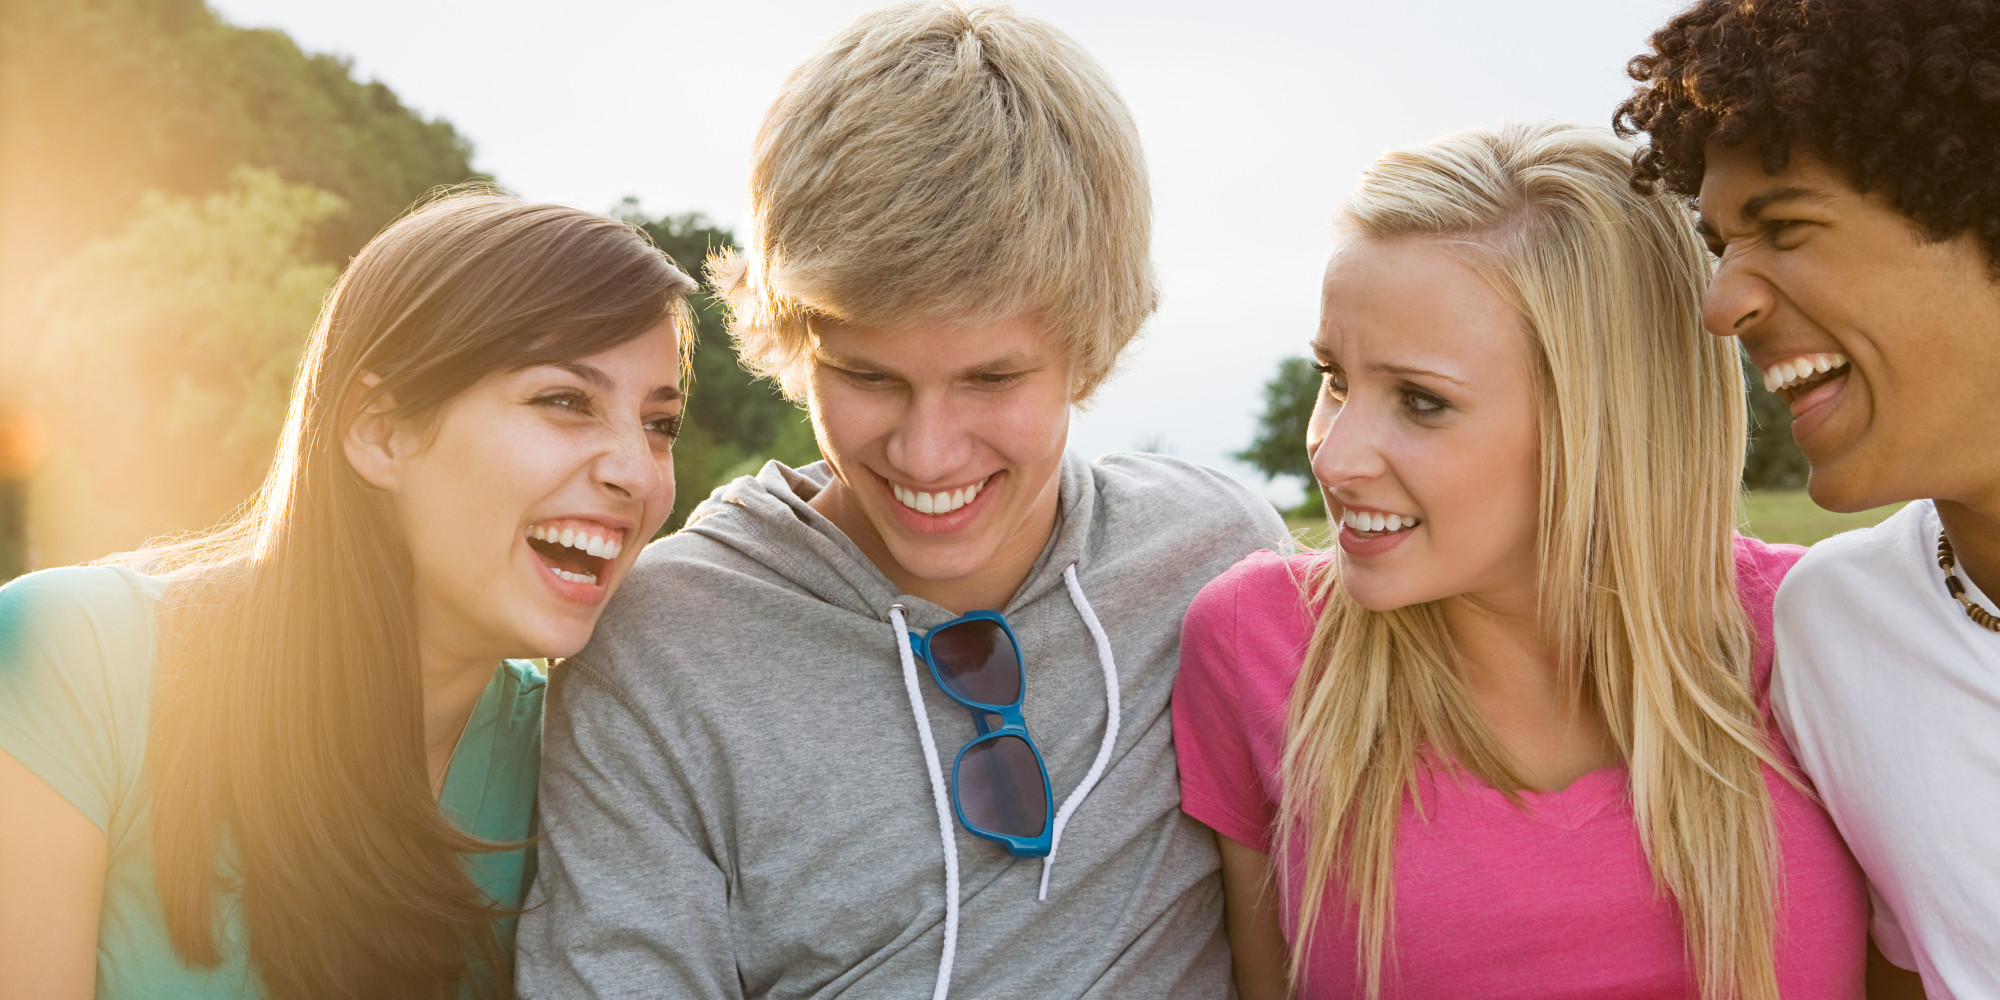 Traits That Build Meaning and Stability Into Your Teen's Life: www.huffingtonpost.com/todd-kestin/five-traits-that-build-meaning...